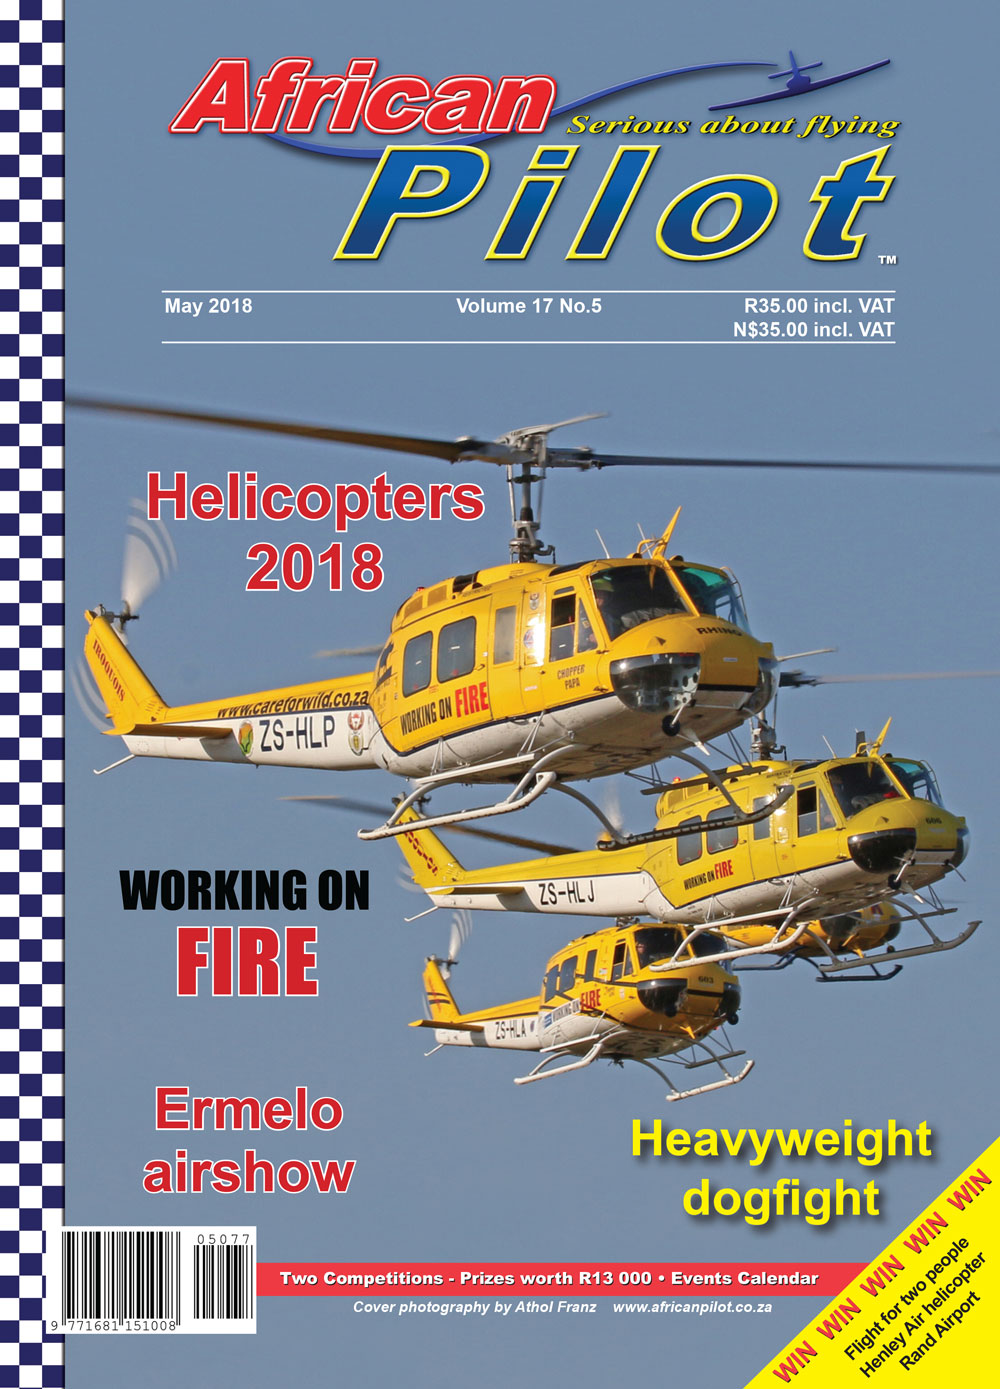 African Pilot Magazine - May 2018